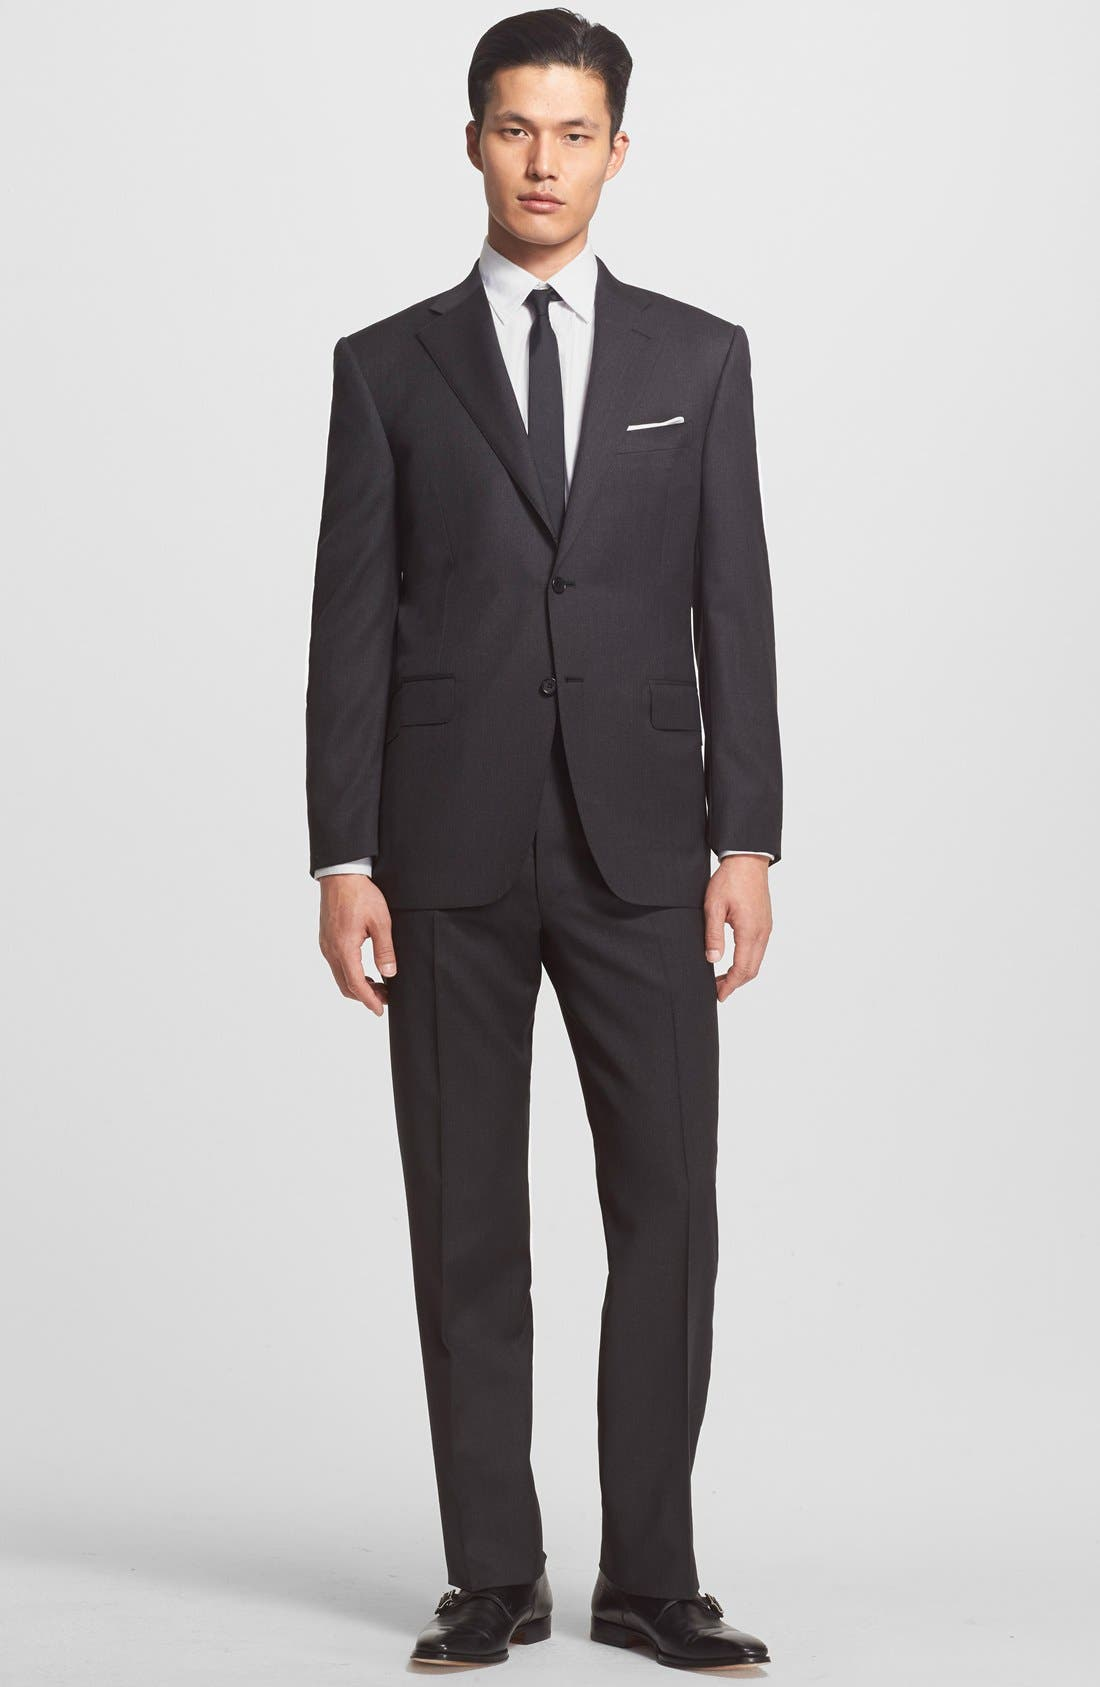 Main Image - Canali Trim Fit Wool Suit